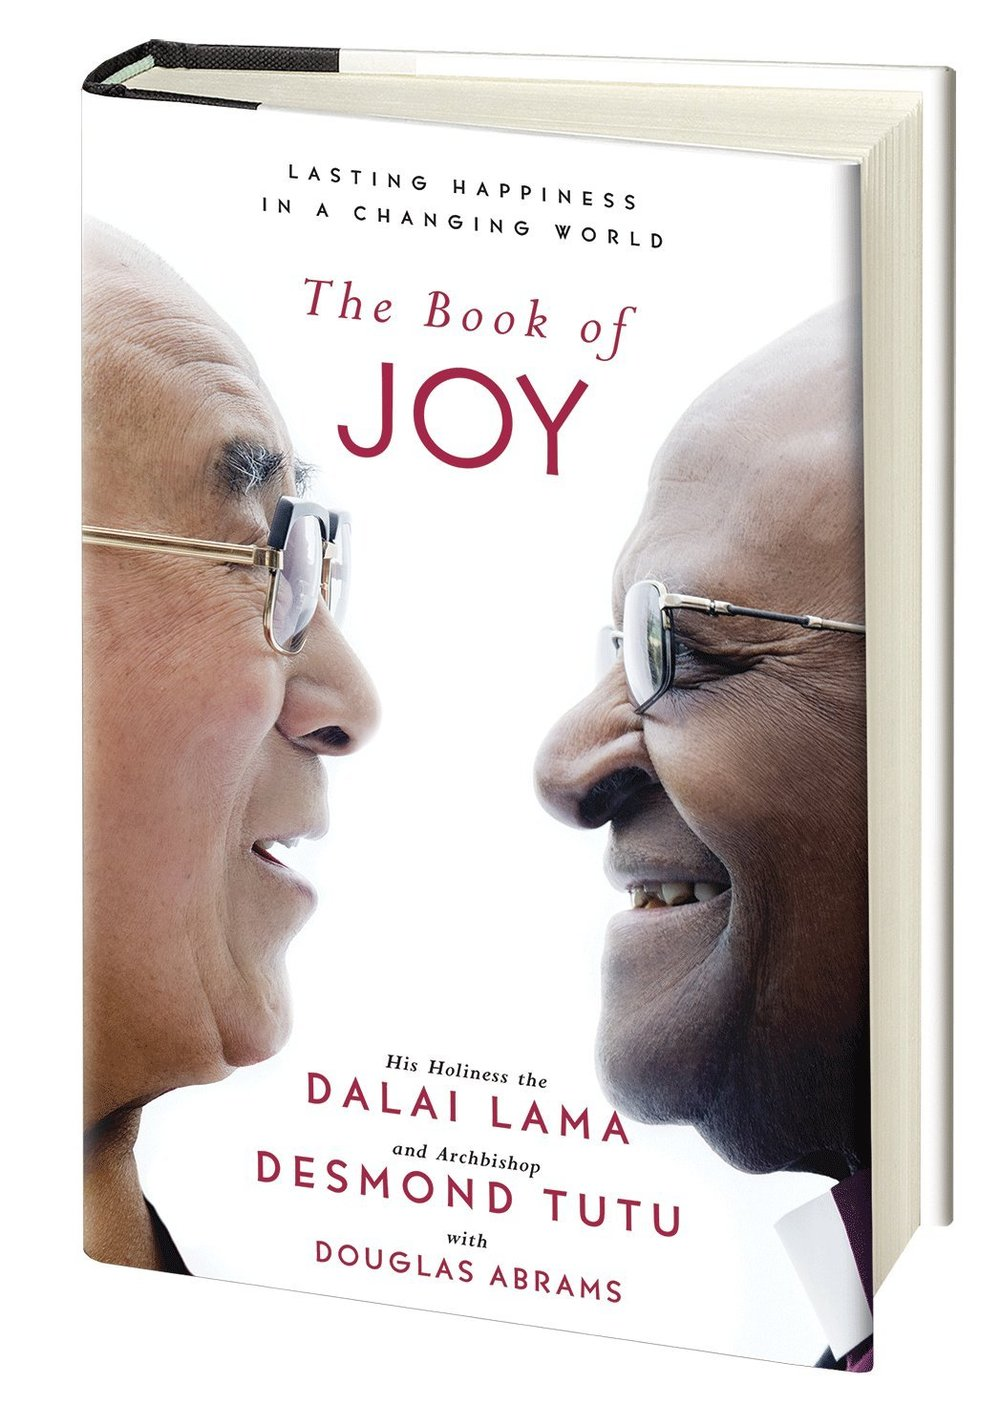 The latest book I red…brilliant! The lightness, depth, humor and friendship between these two world leaders is very inspiring and human at the same time. They spent a week together to write this book about how to live a joyful life.